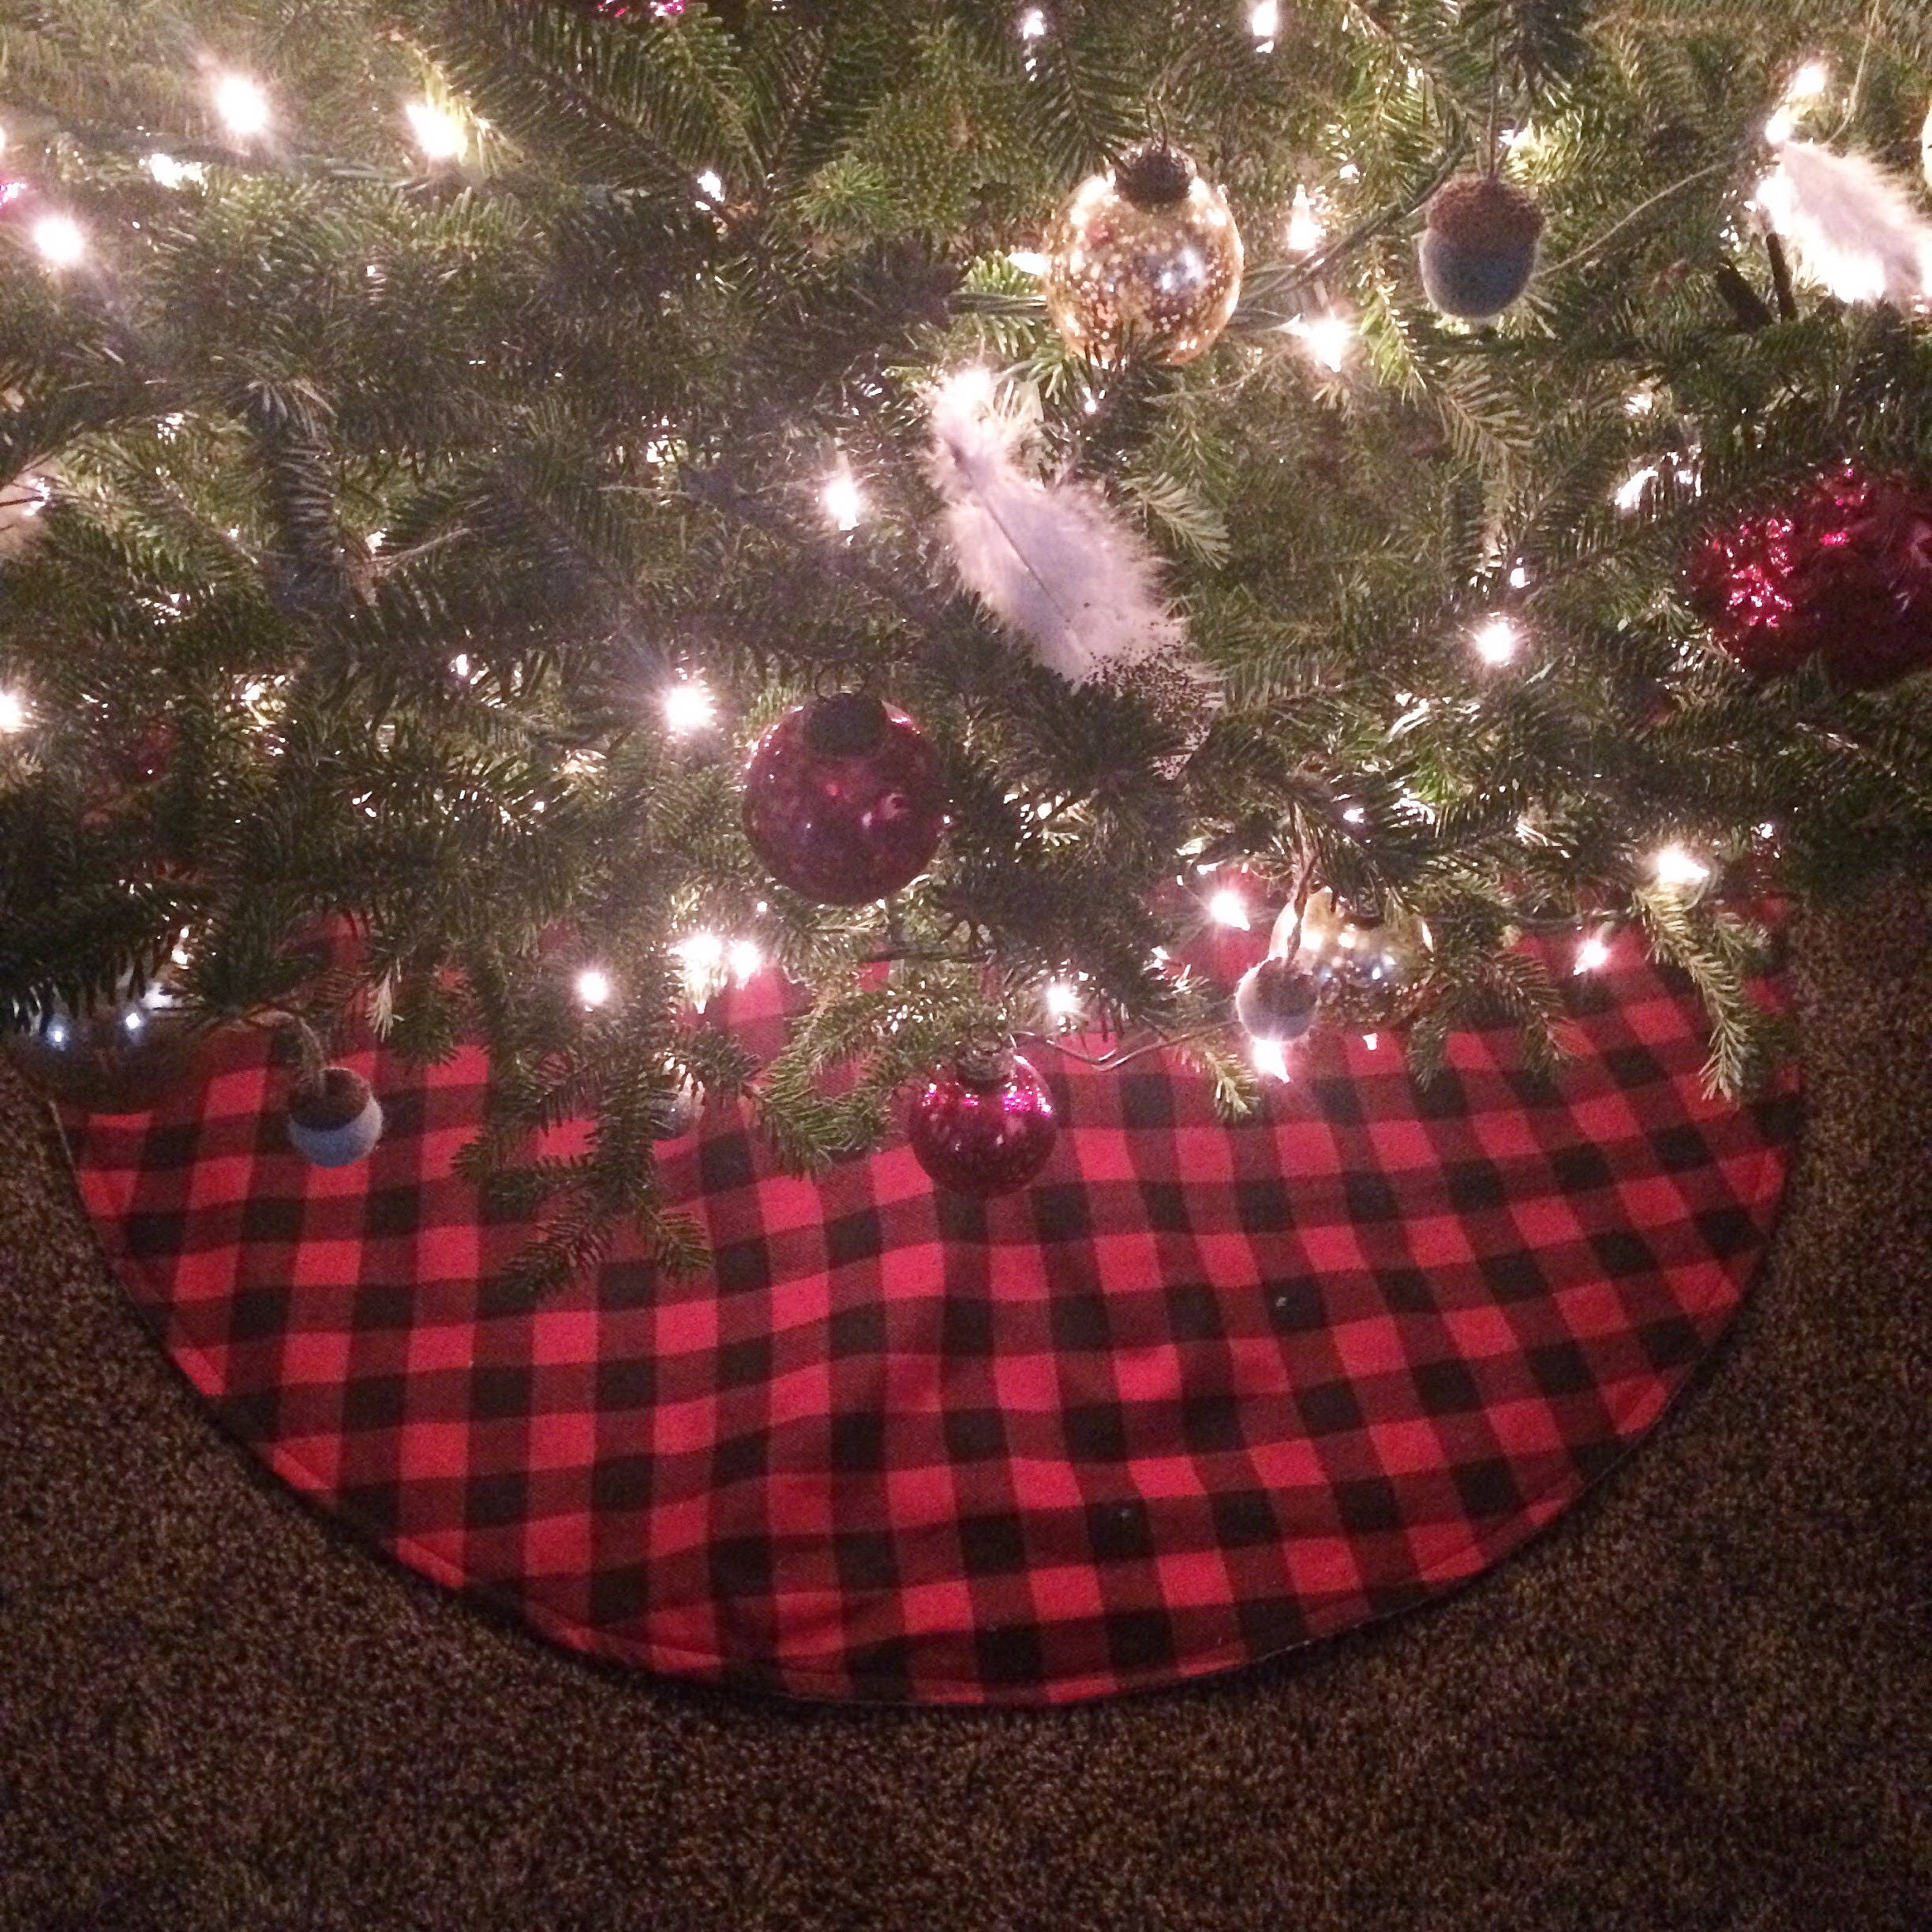 40 buffalo plaid natural burlap tree skirt redblack check cotton flannel christmas woodland cabinfarmhouse decor rustic chic - Red And Black Plaid Christmas Decor